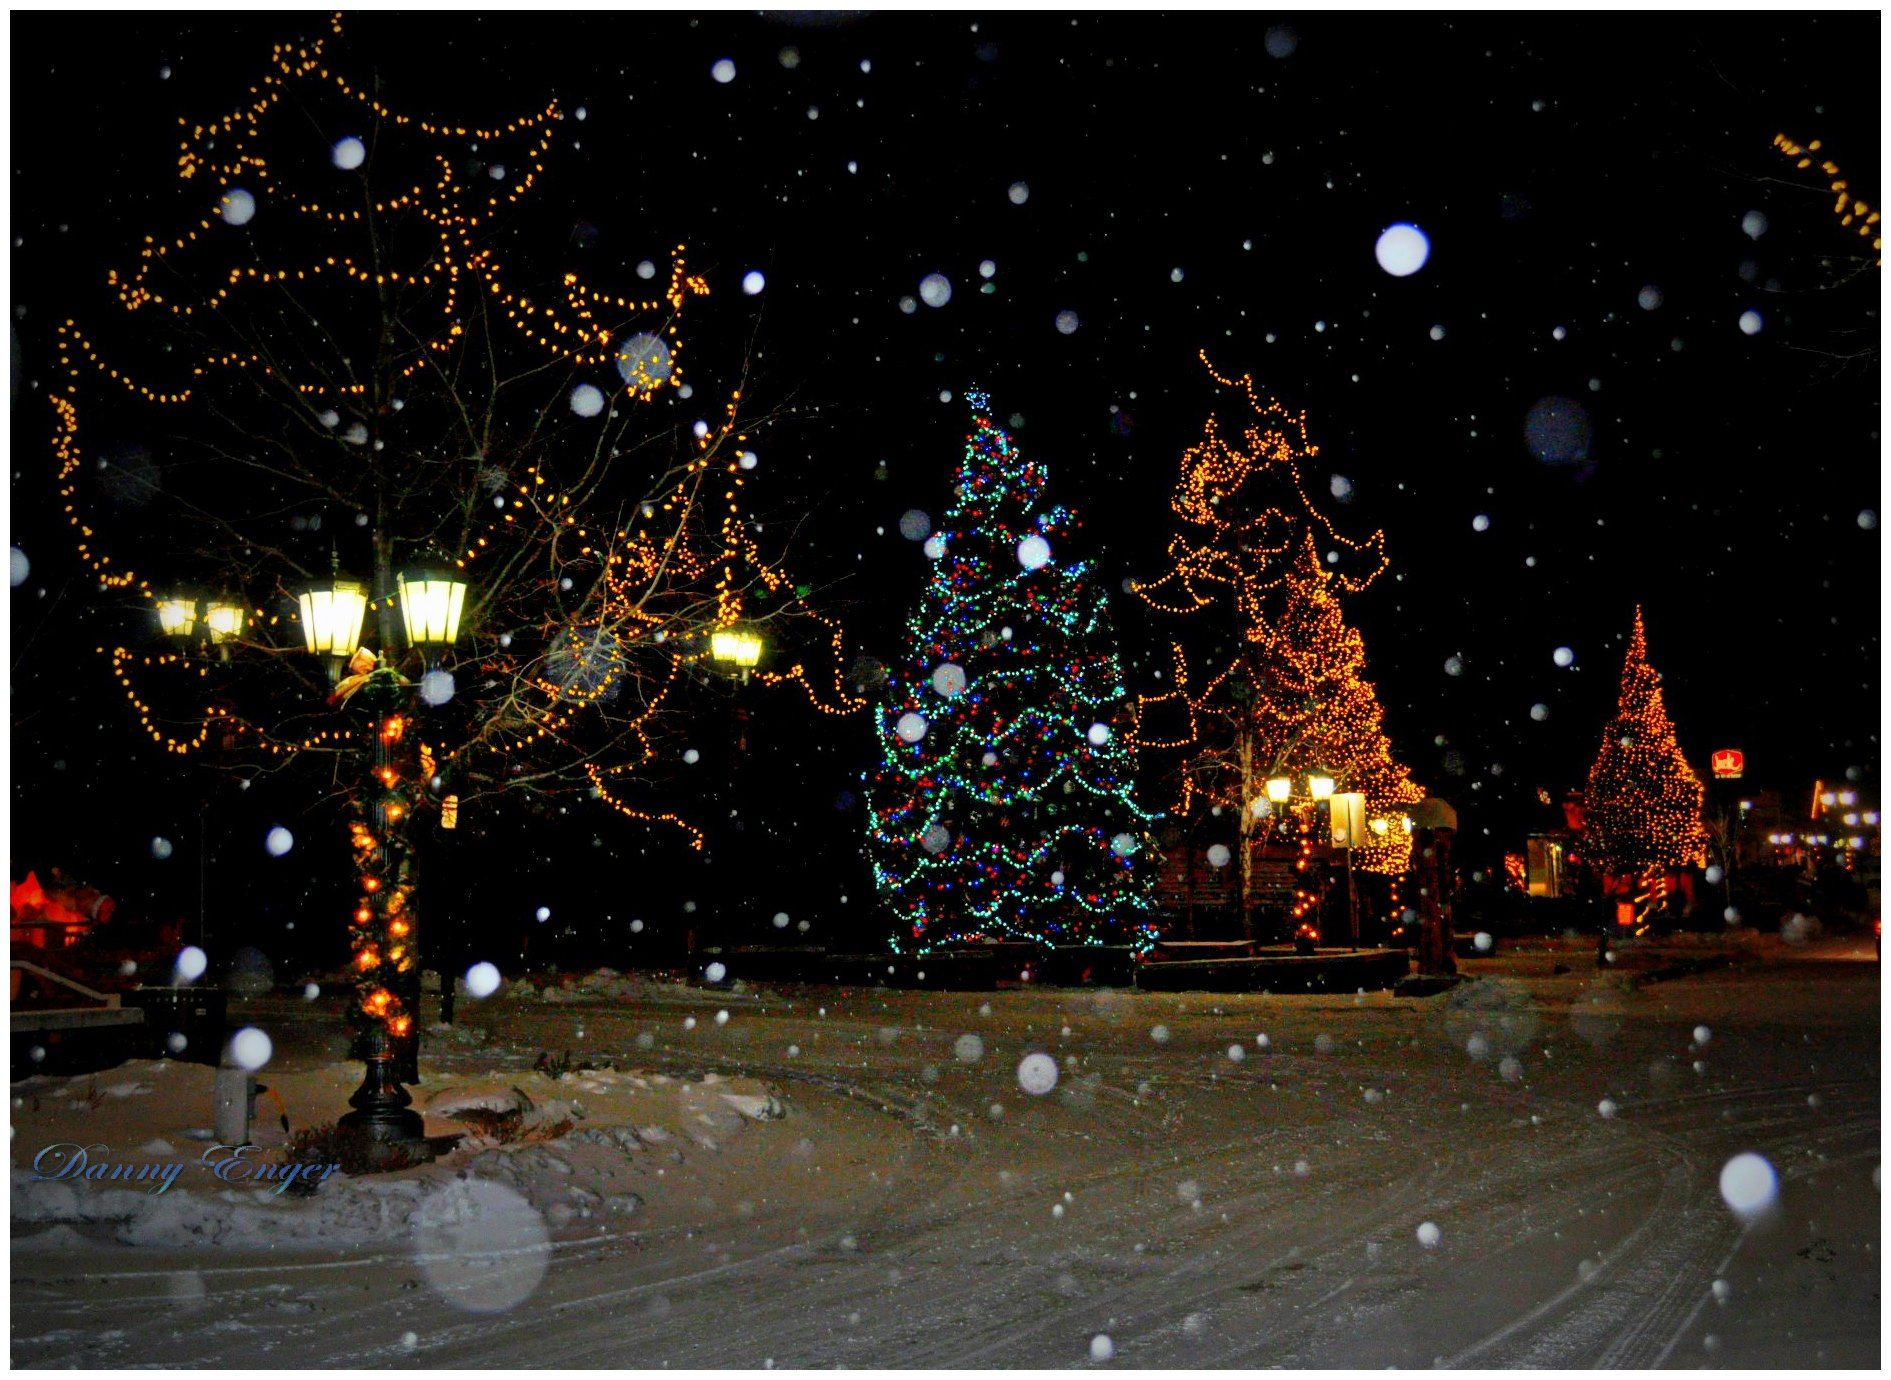 Big Bear Village Christmas.Big Bear Lake Ca Christmas Time In The Village Village